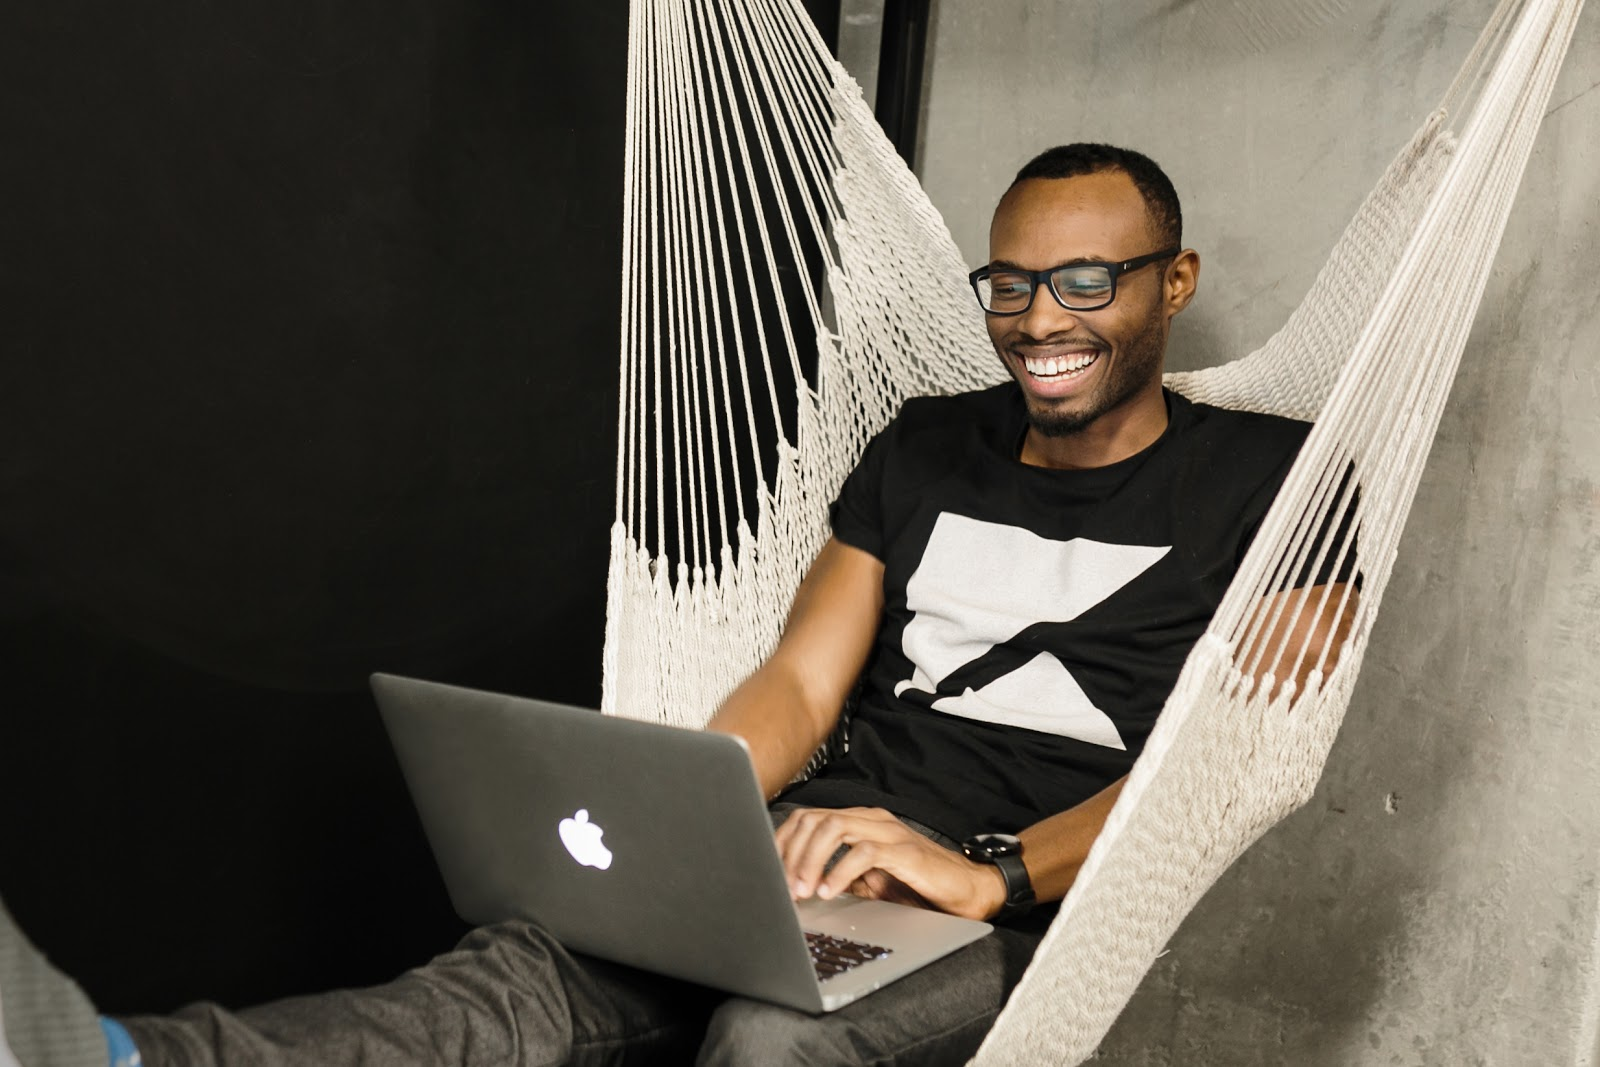 Smiling person in a hammock, working on a laptop